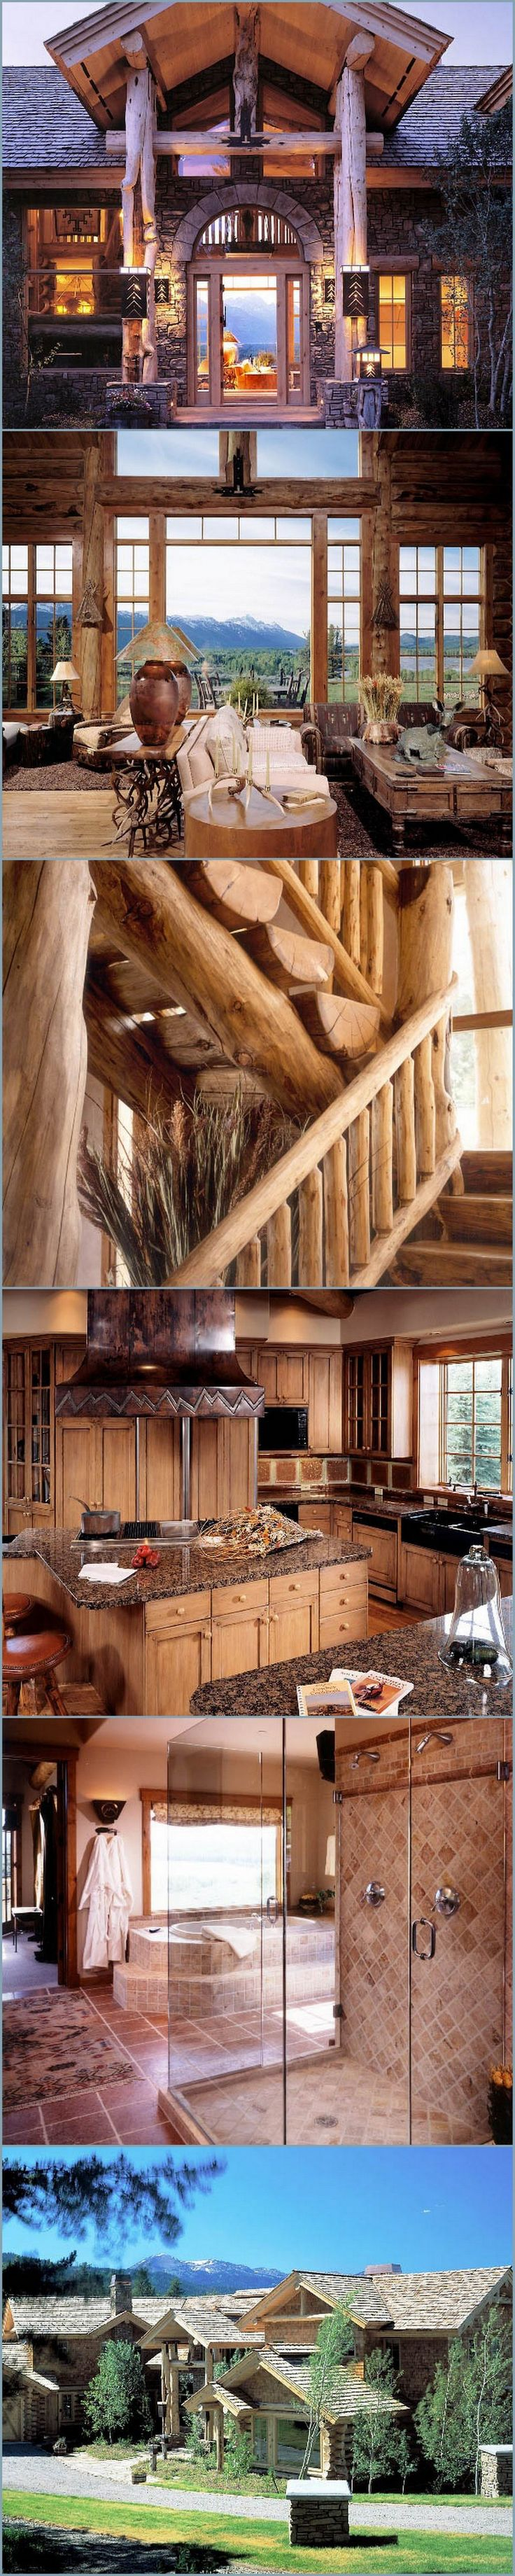 Forest Ledge Custom Log Home by Architect Eliot Goss @styleestate